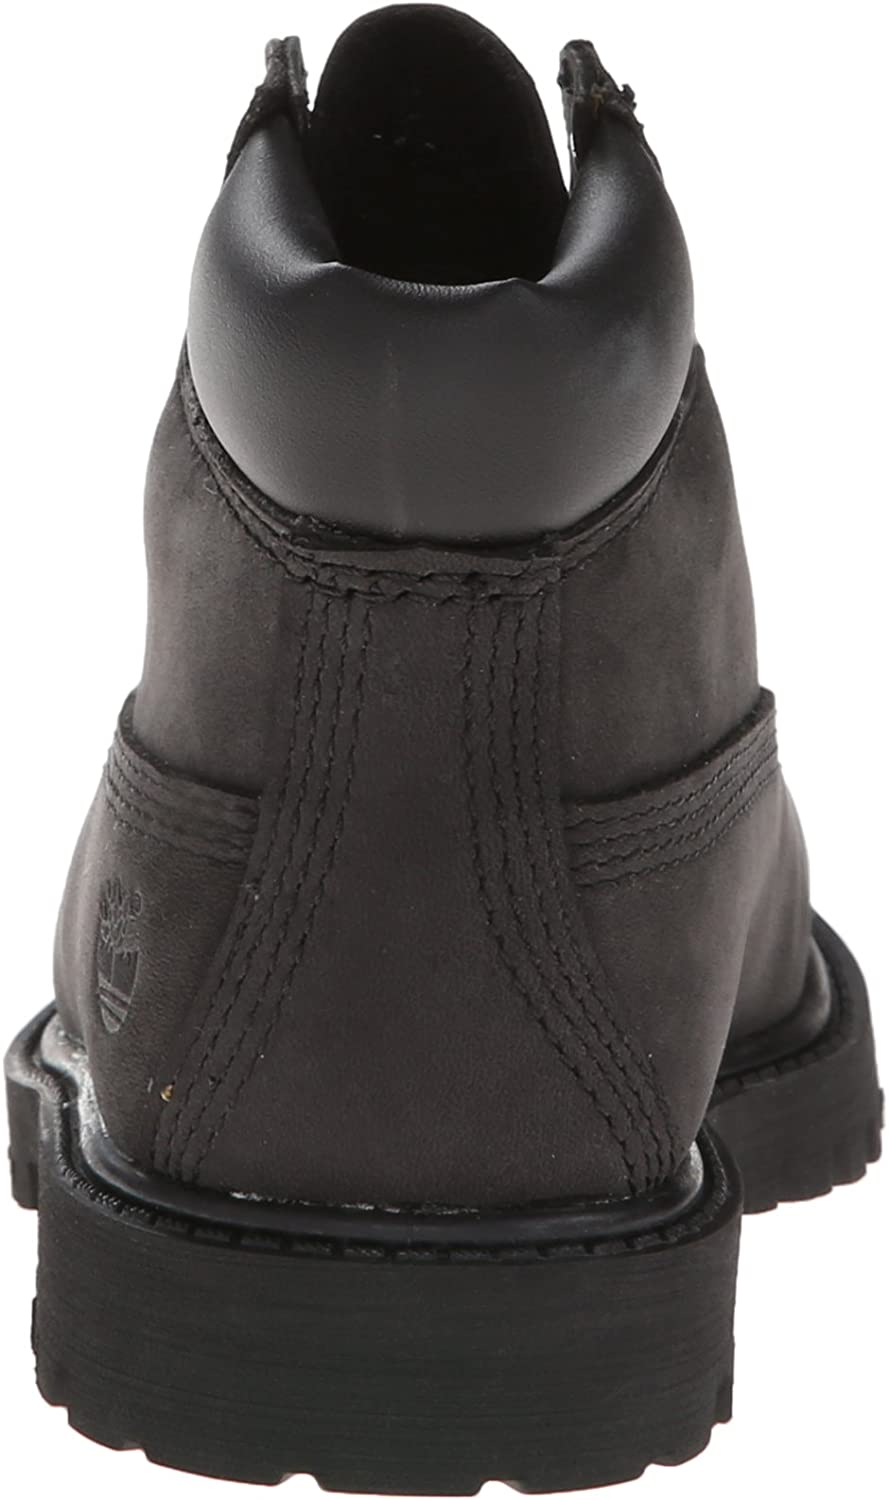 Timberland Kids 6 Premium Waterproof Boots for Toddlers